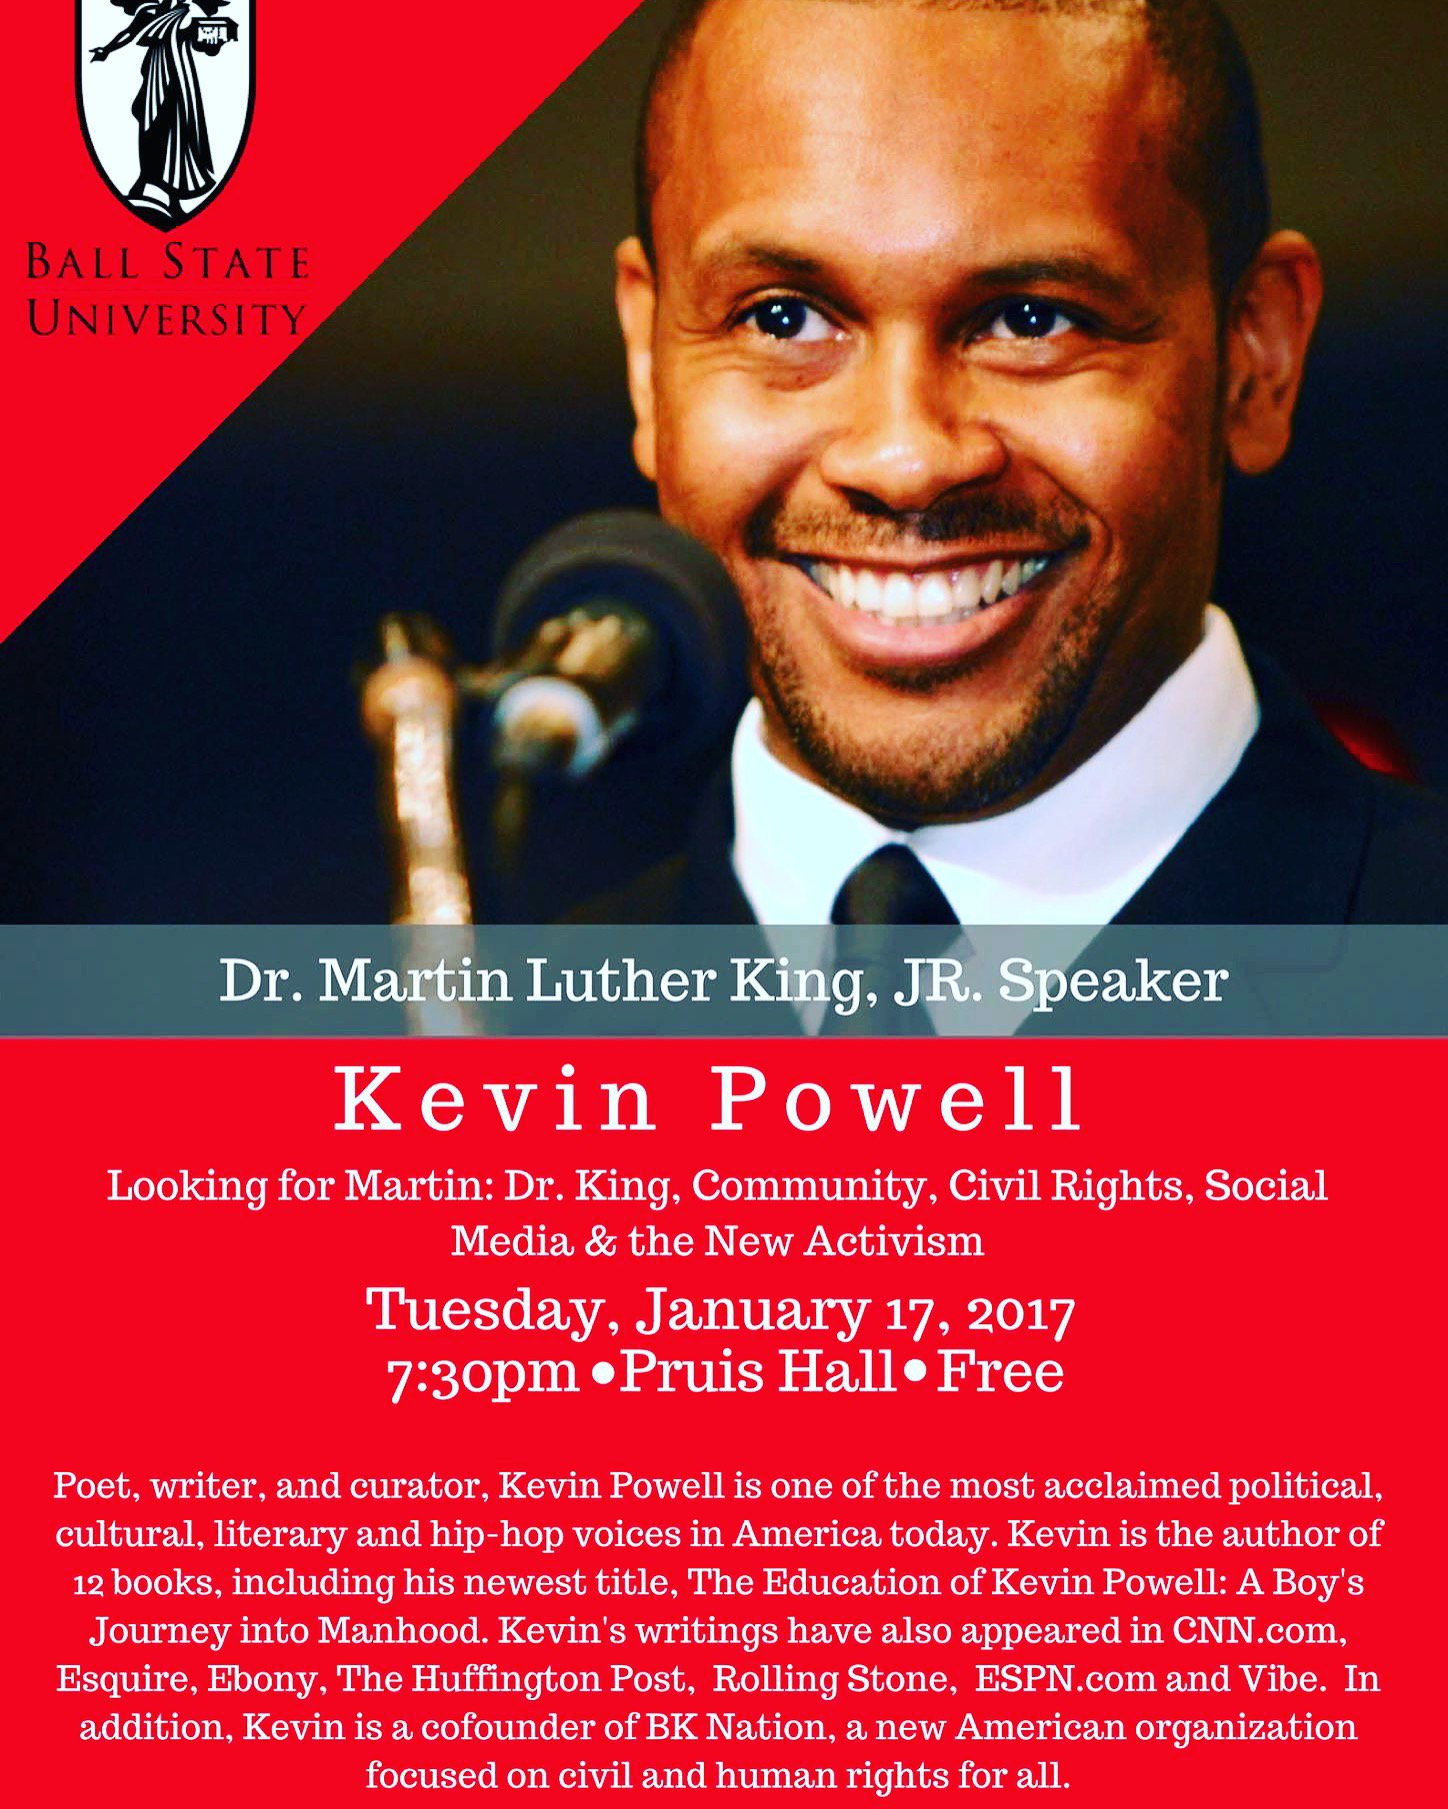 Tonight is the night! Join Kevin Powell in Pruis Hall tonight at 7:30! https://t.co/eA4q68zf8d